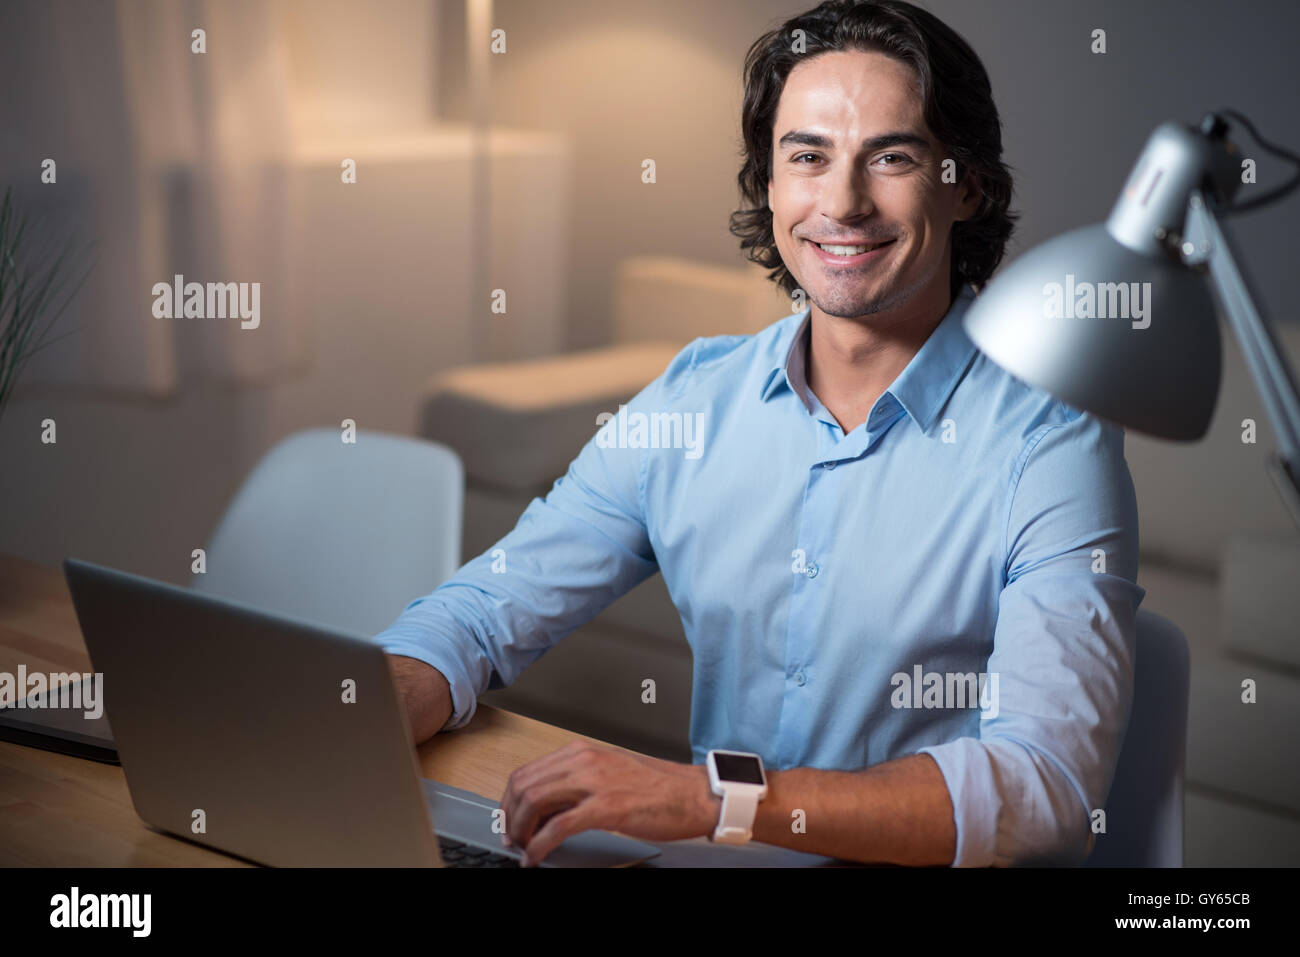 Handsome smiling man working on laptop. - Stock Image